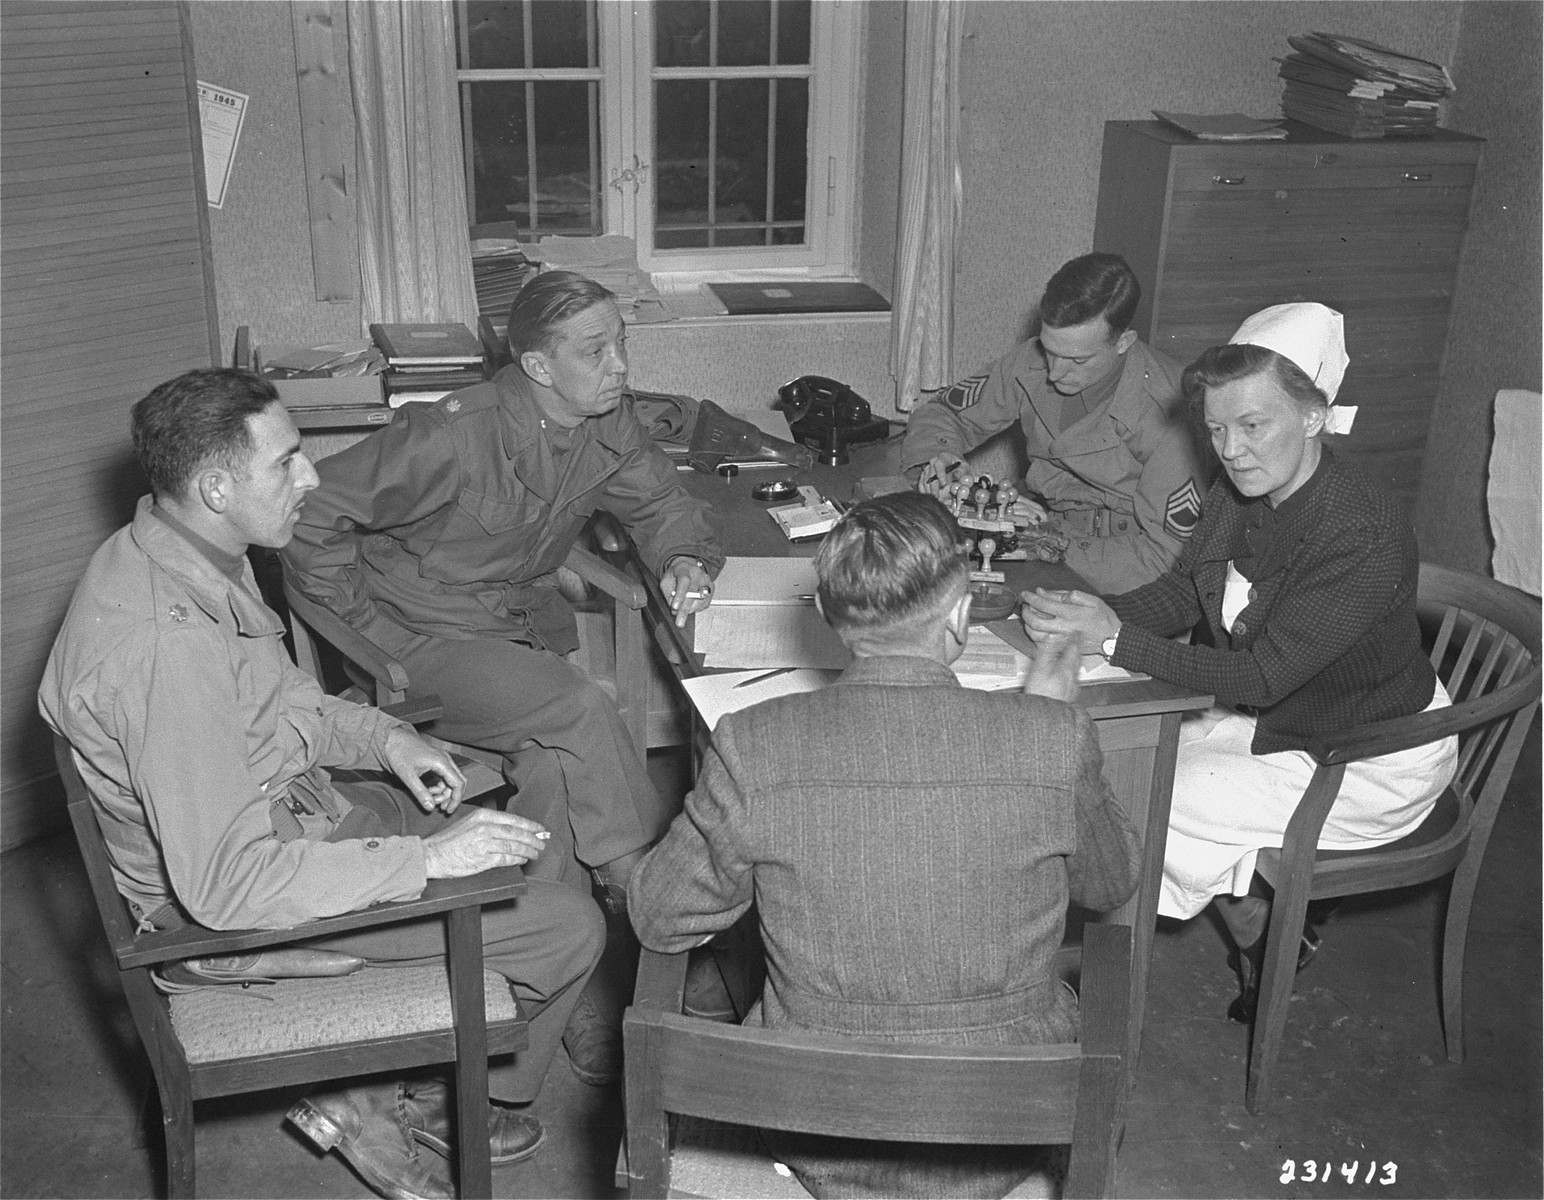 American war crimes investigators question chief nurse Irmgard Huber about the mass killings that occurred at the Hadamar Institute.  The photograph was taken by an American military photographer soon after the liberation.